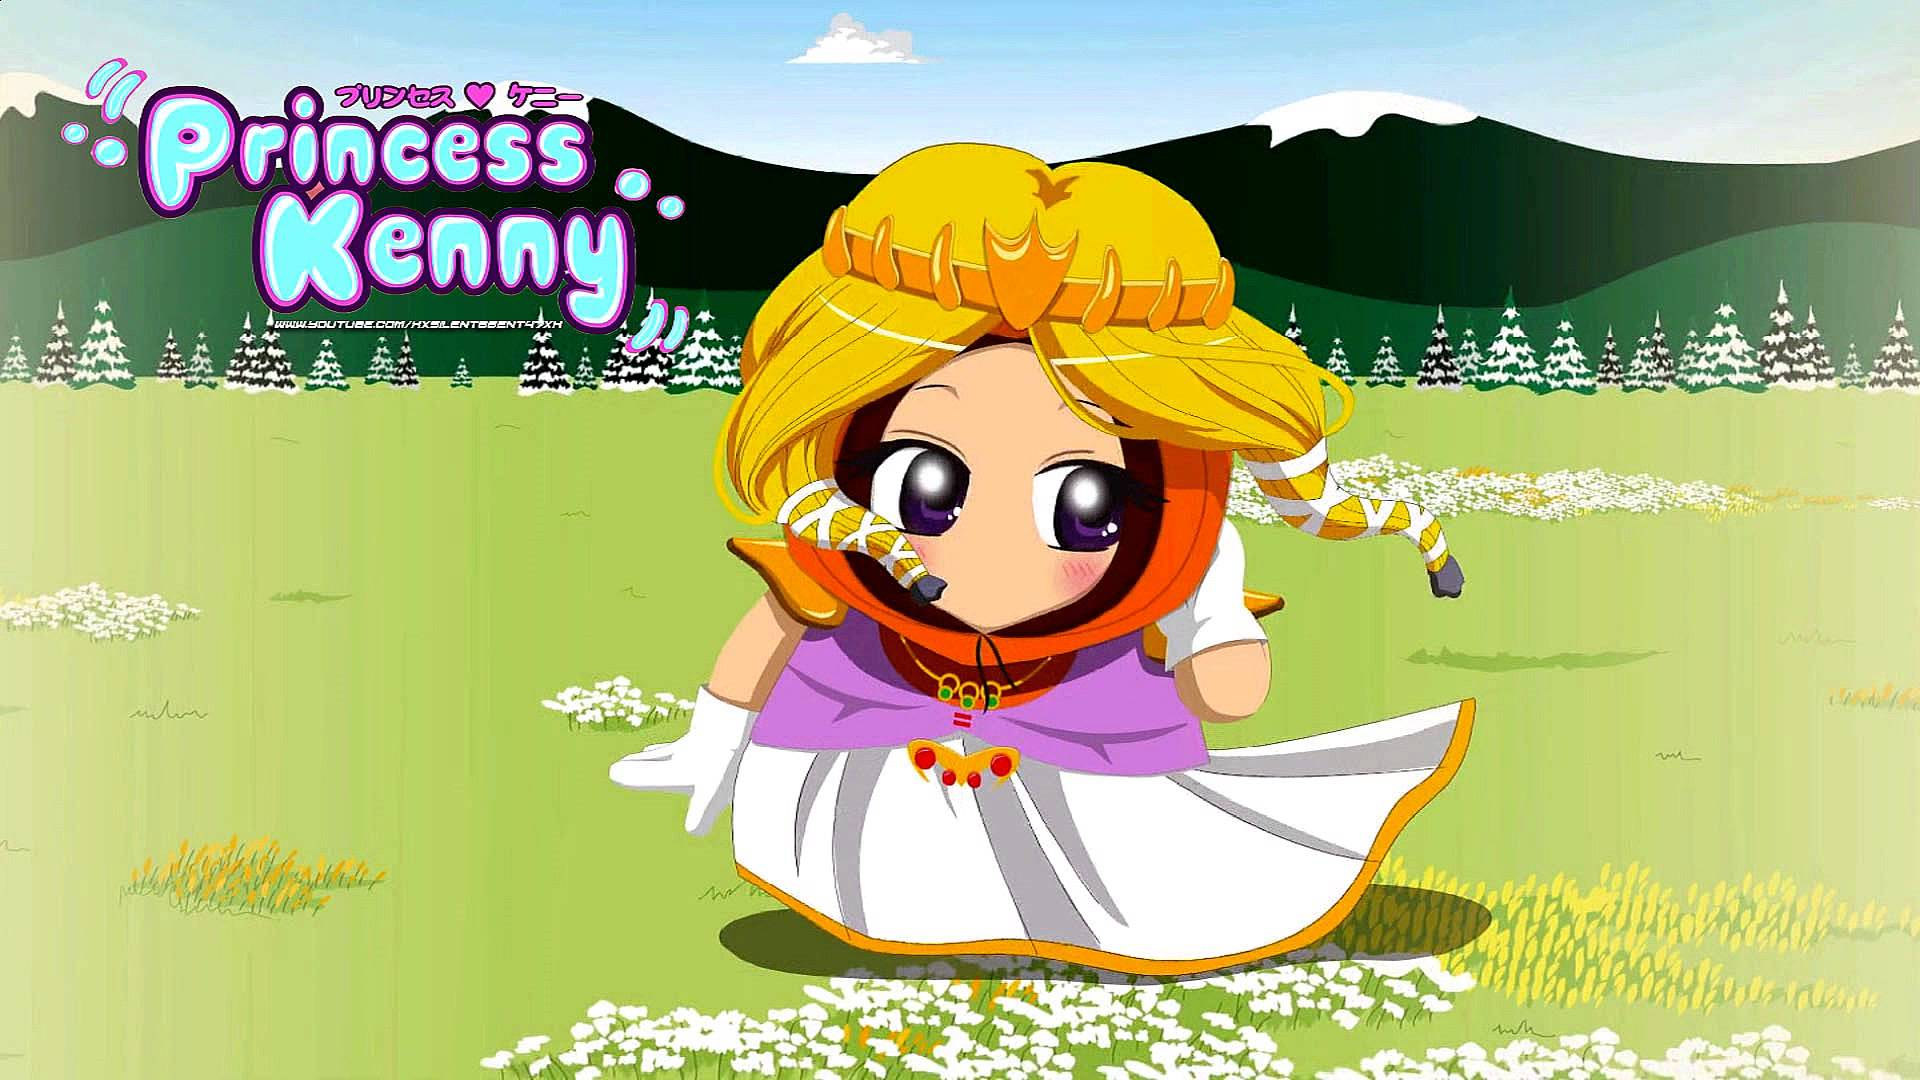 Free Download South Park The Stick Of Truth Princess Kenny Theme